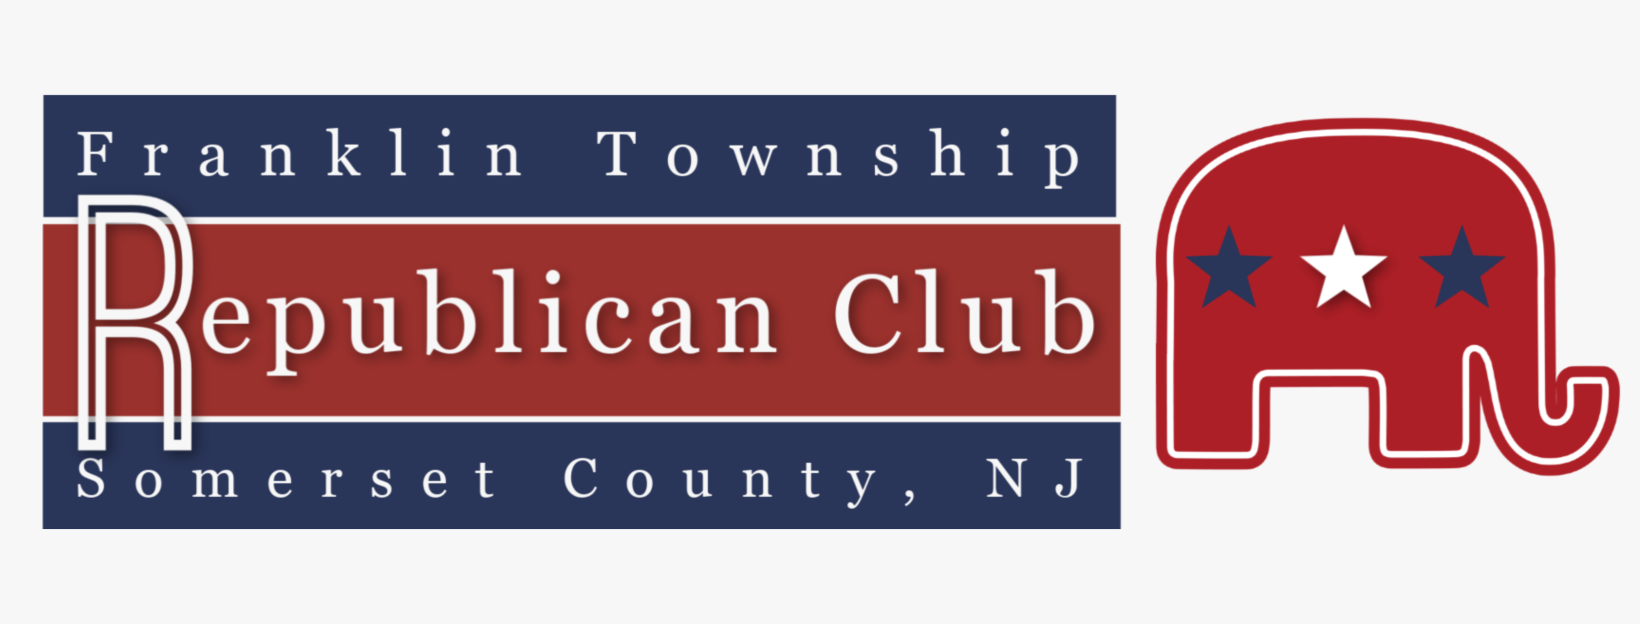 Franklin Township Republican Club